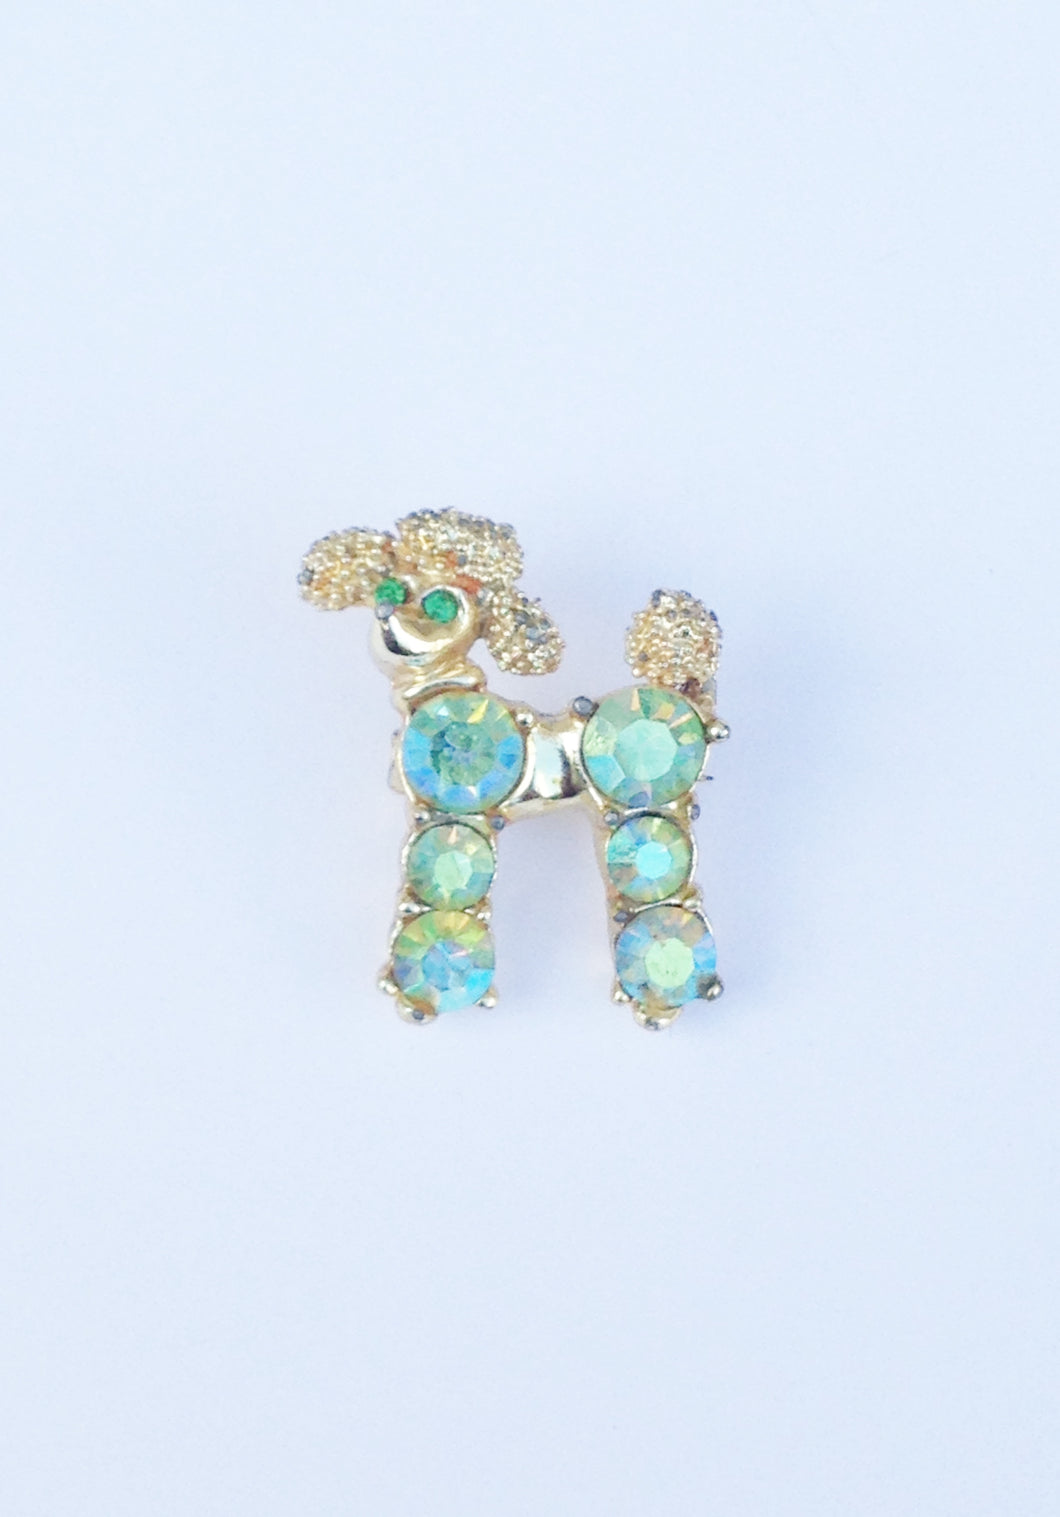 Gold Tone Green Aurora Borealis Poodle Dog Brooch Pin www.hersandhistreasures.com